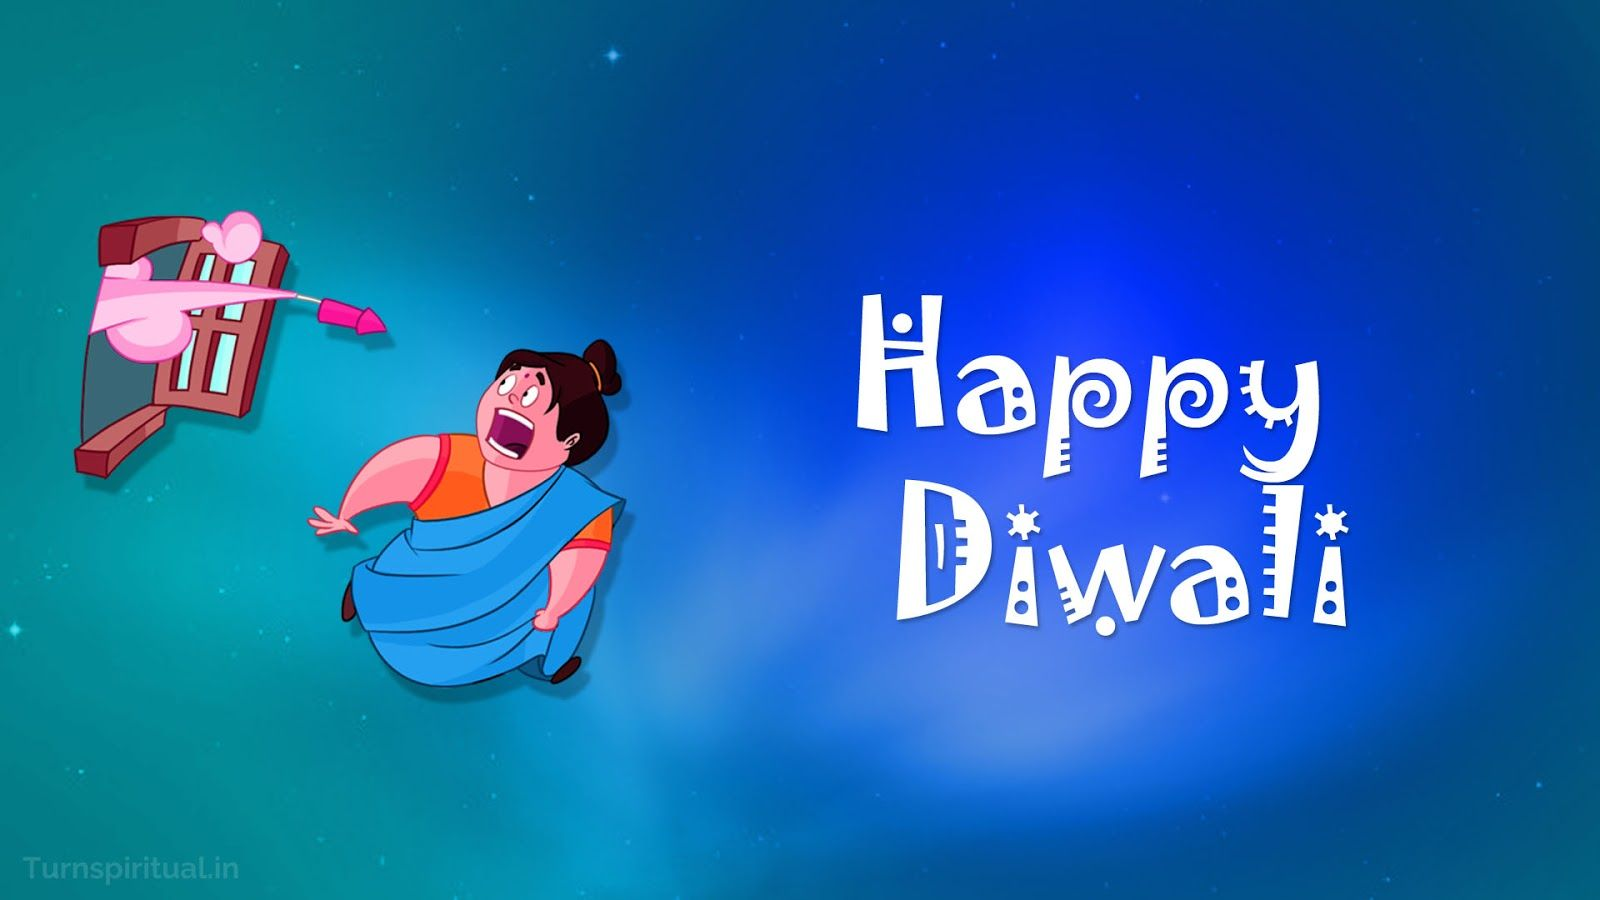 Happy diwali deepavali funny image diwali wishes greeting happy diwali deepavali funny image diwali wishes greeting cards free hd wallpapers m4hsunfo